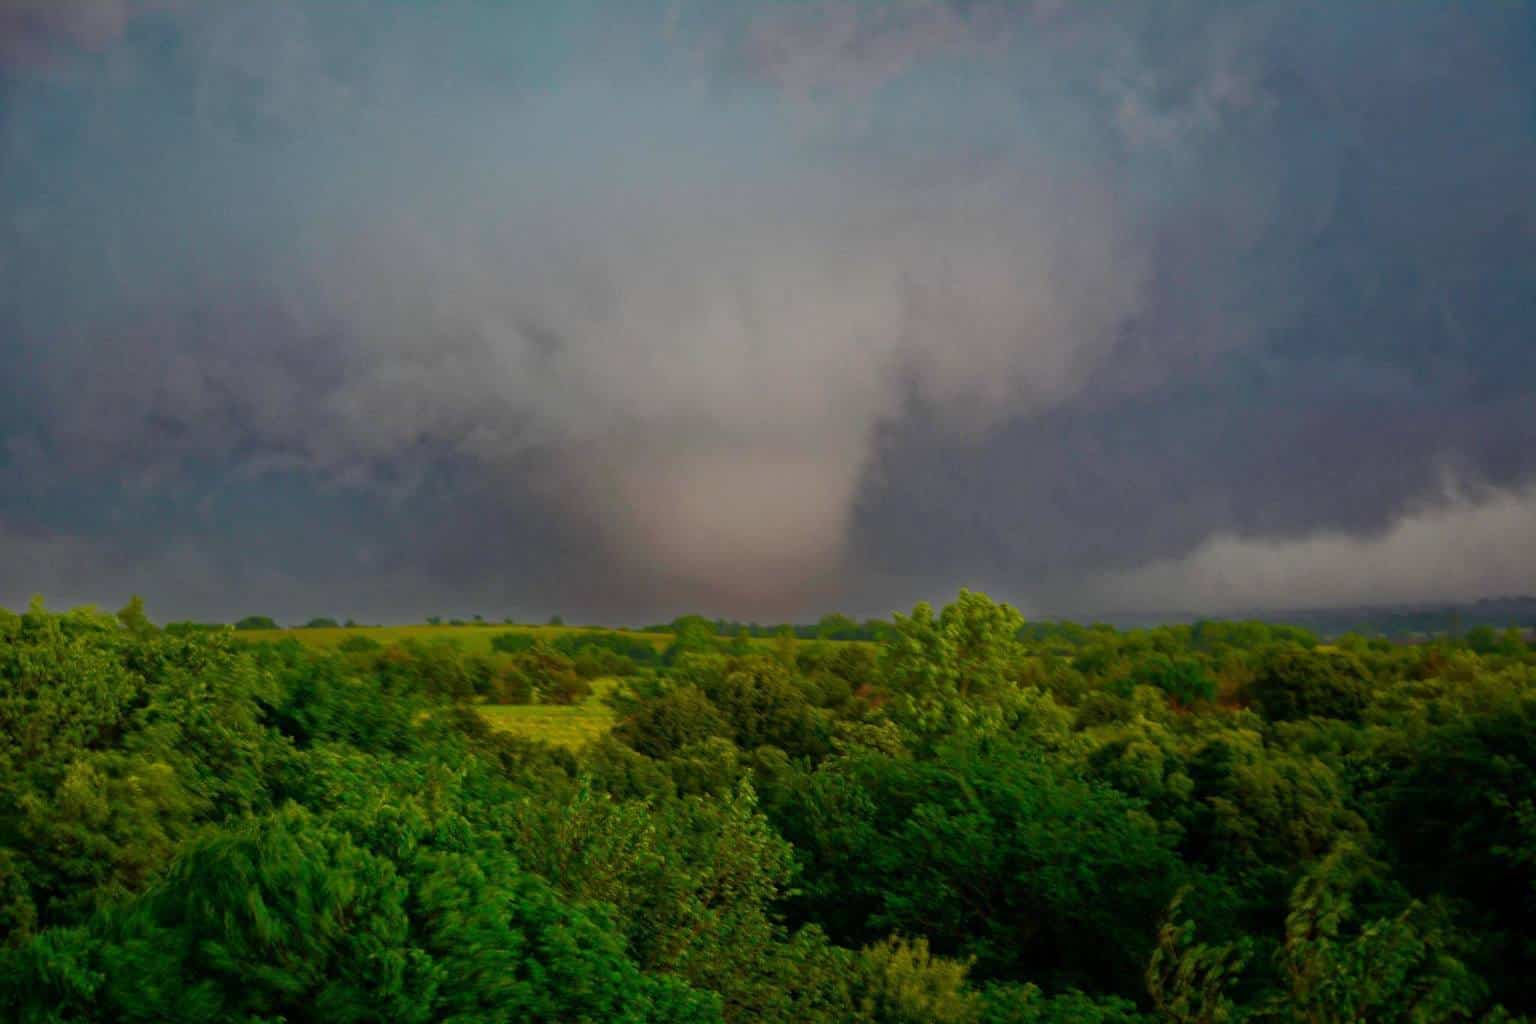 One of my favorite photos from last year; May 6th, 2015 near Bridge Creek, OK.